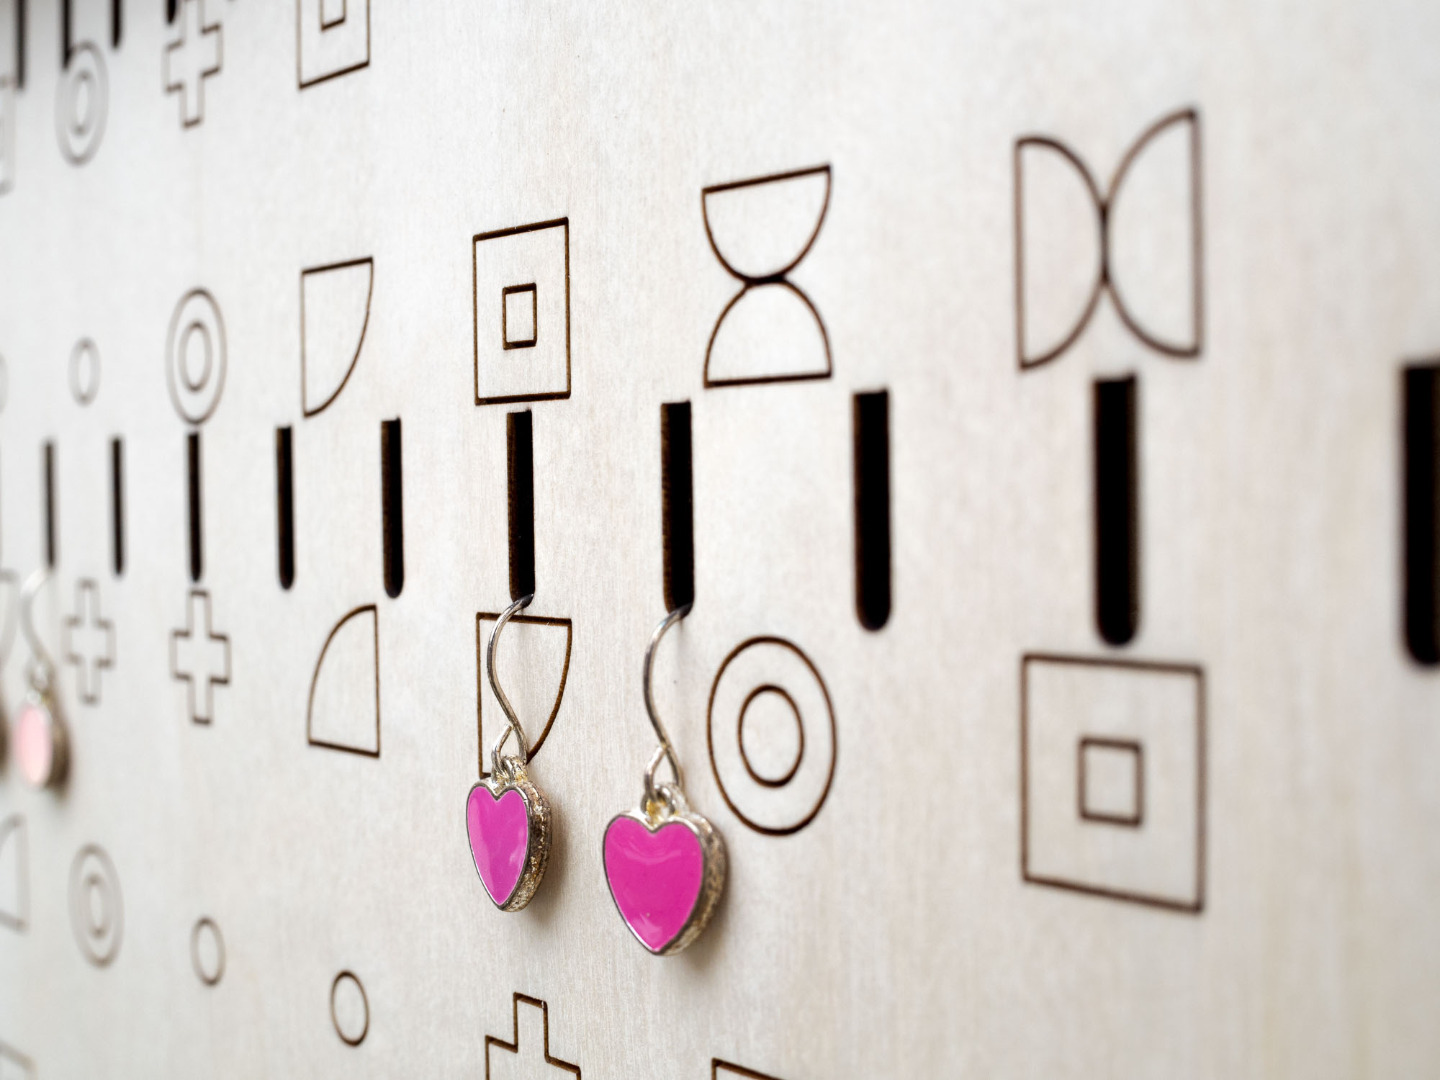 Wall Mounted Jewelry Storage Display with